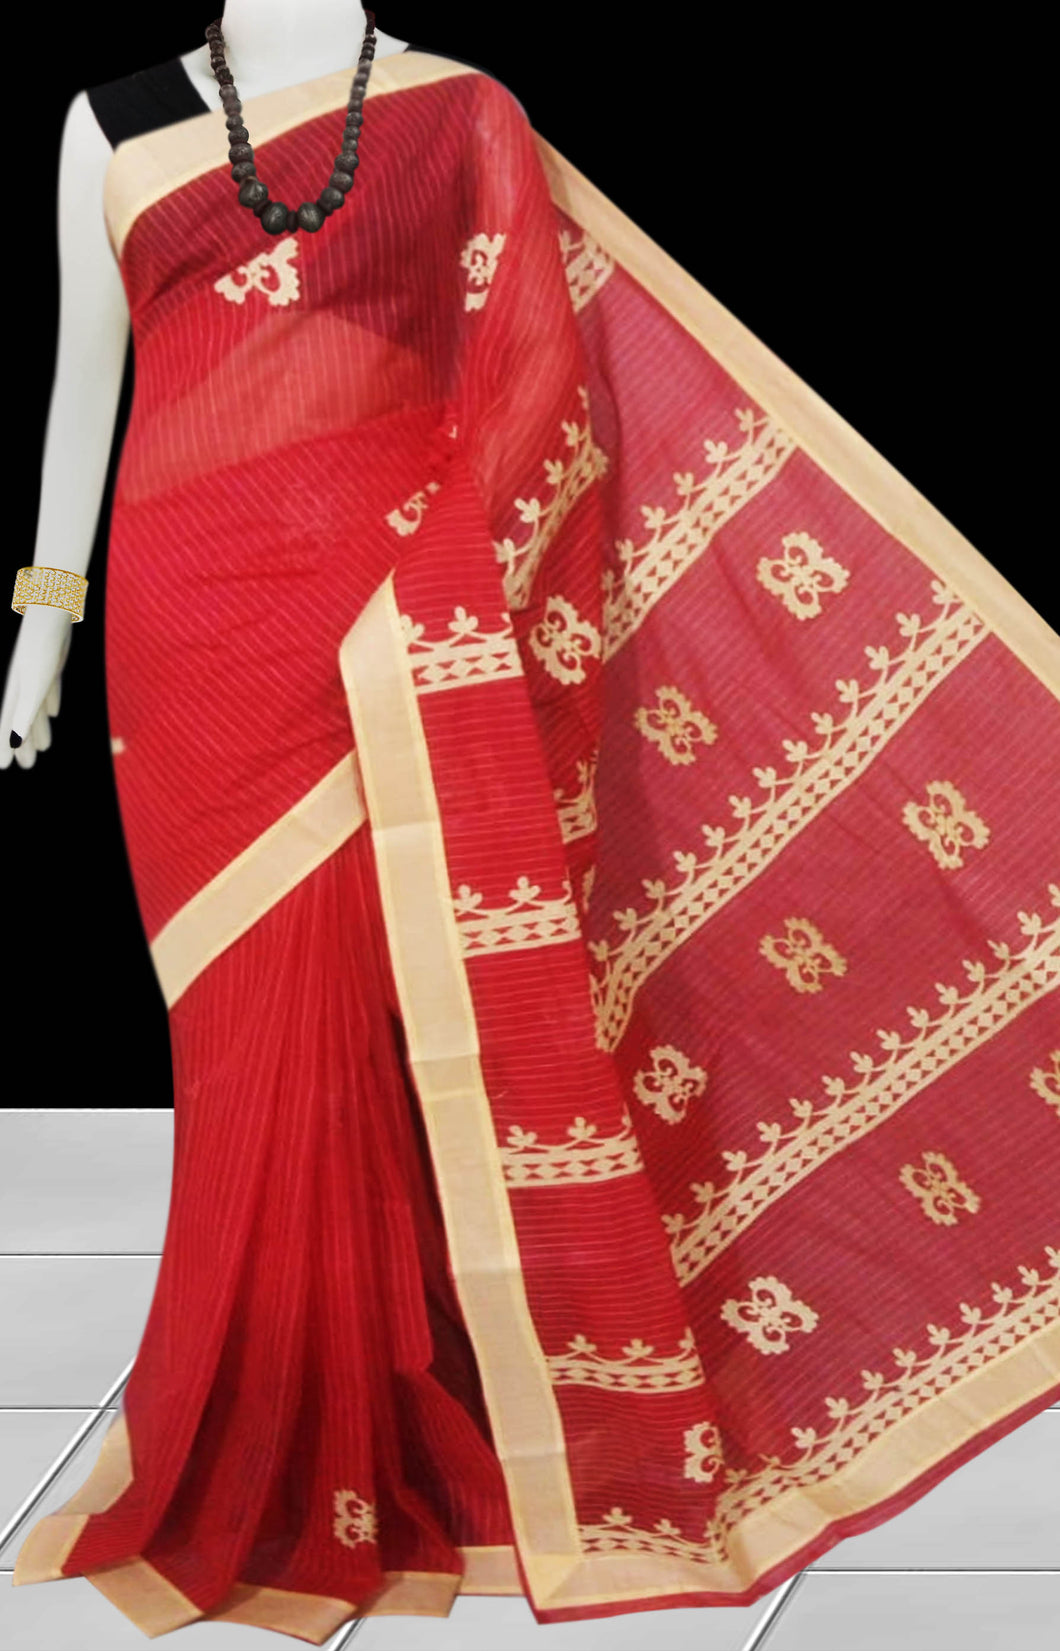 Red Color cotton saree, featured with applique work